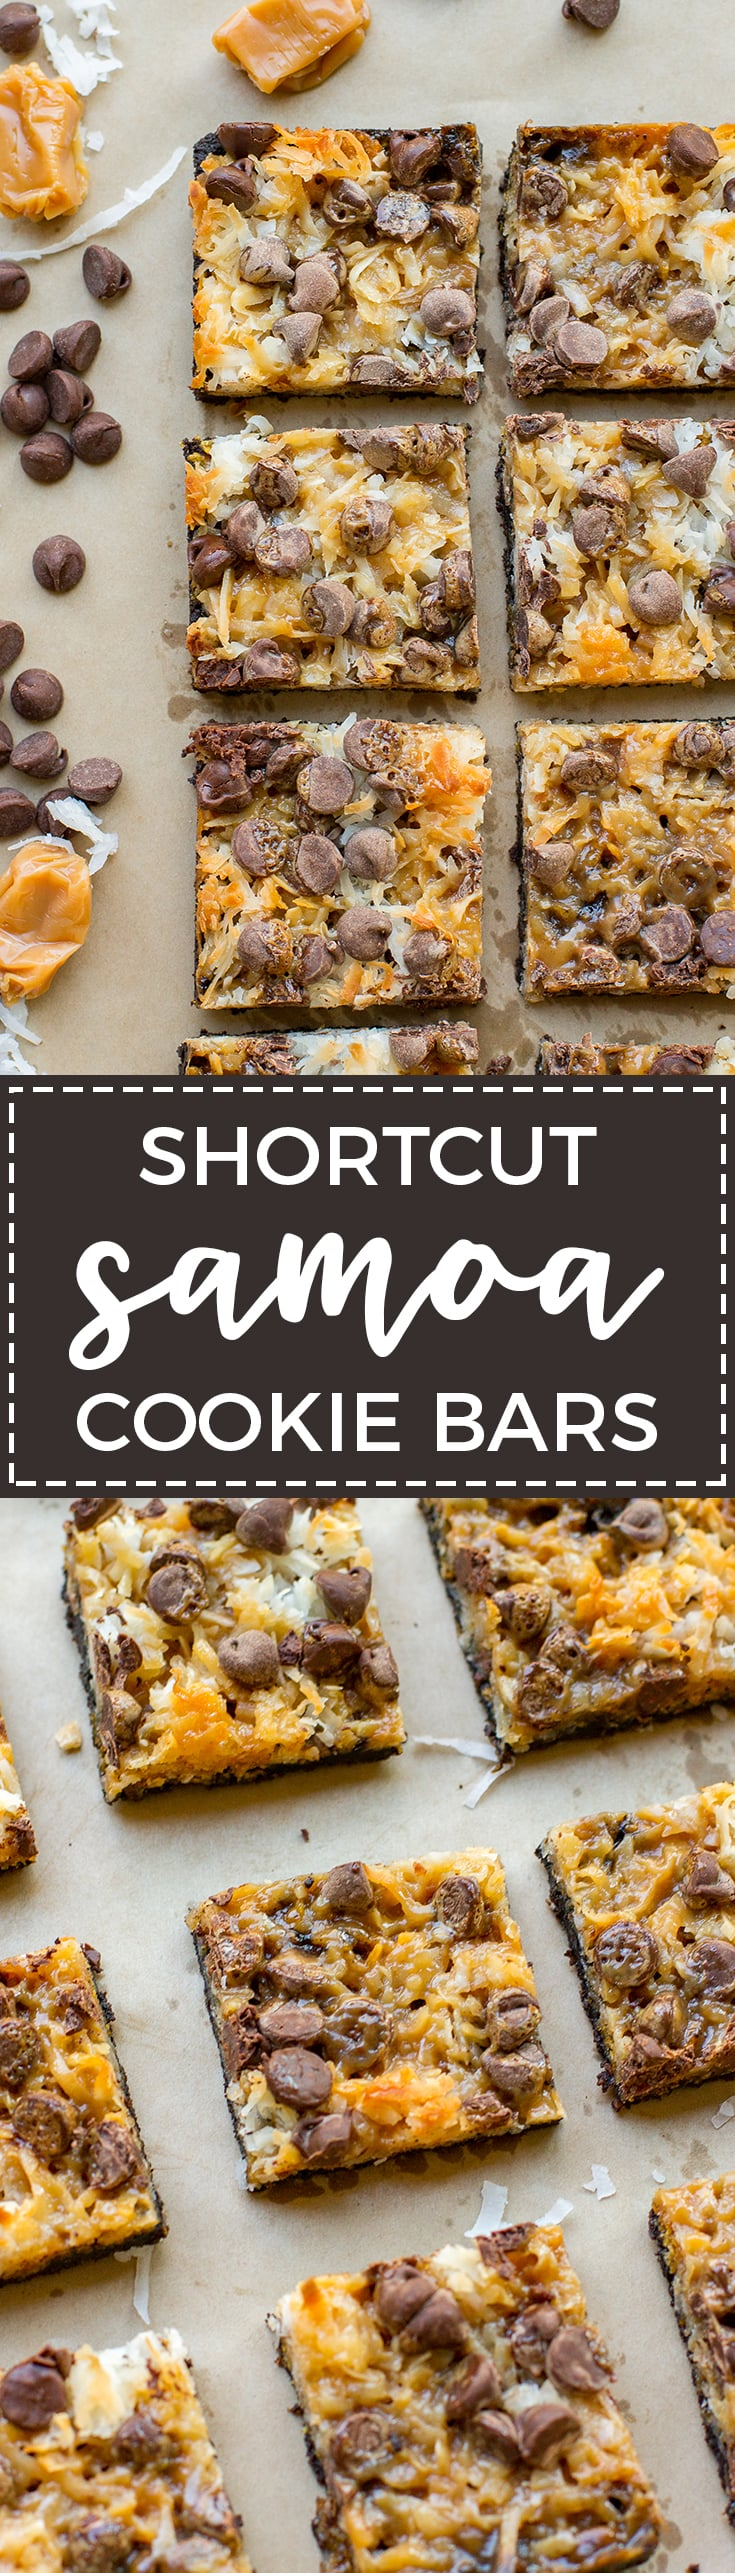 ... sweetened coconut, and a decadent Oreo crust combine to make the  ultimate shortcut Samoa cookie bars. Whether you know them as Samoas or  Caramel Delites ...